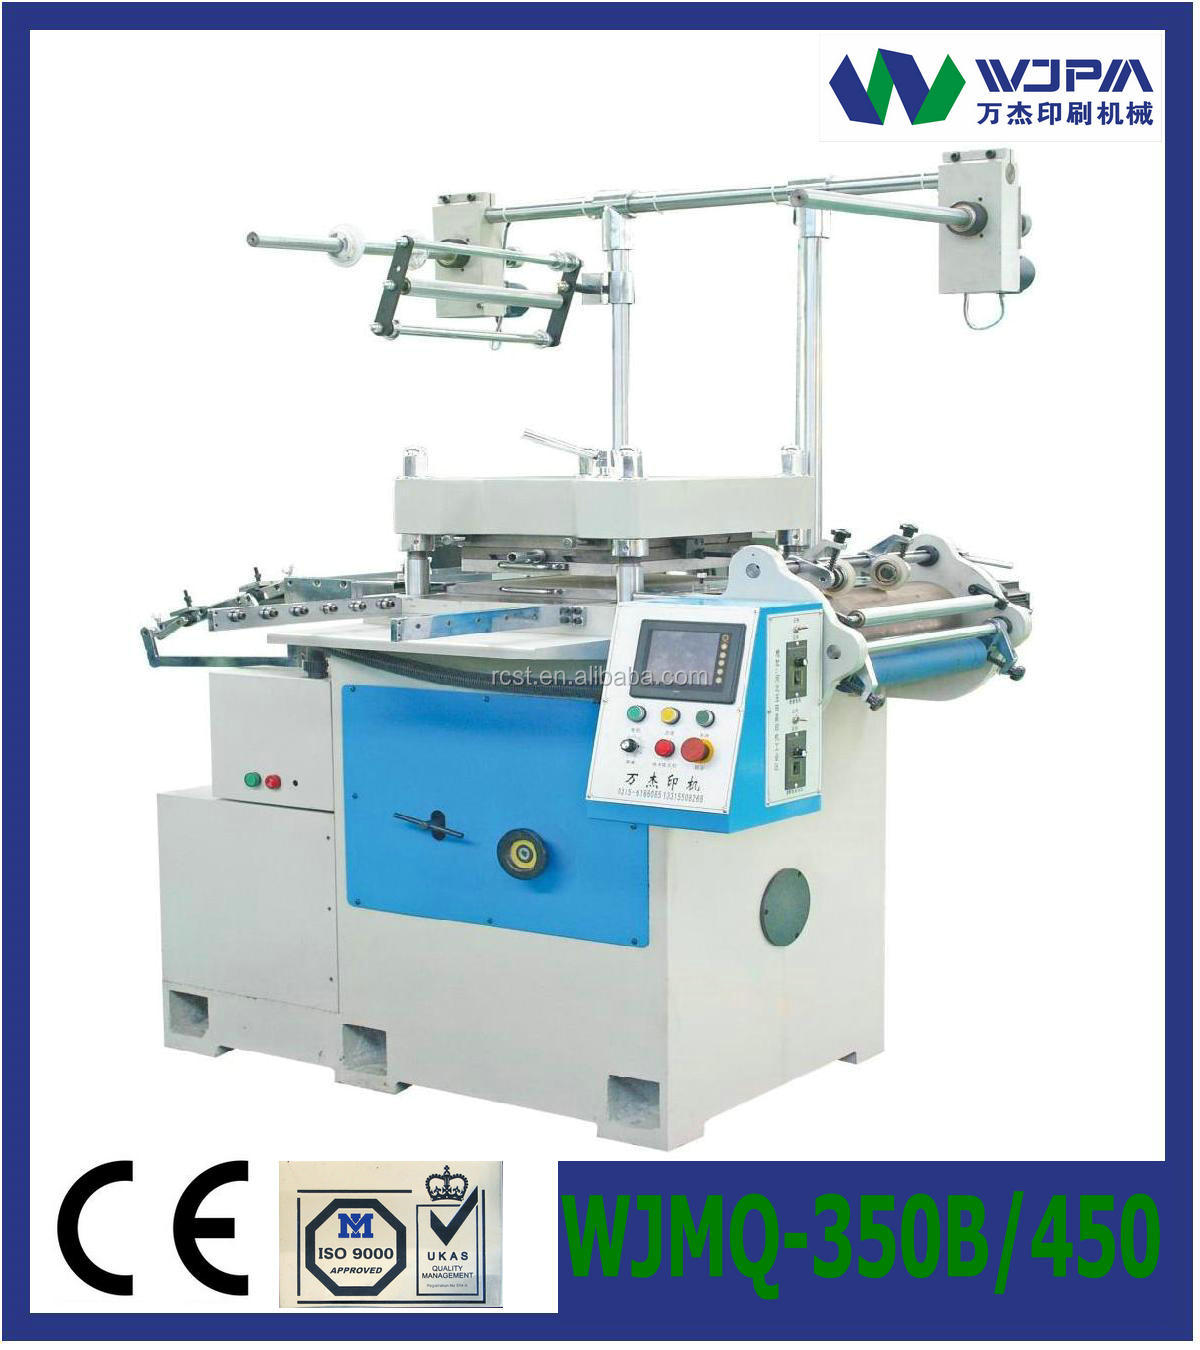 Automatic Paper Label Rewinder Made in China(WJFJ350)